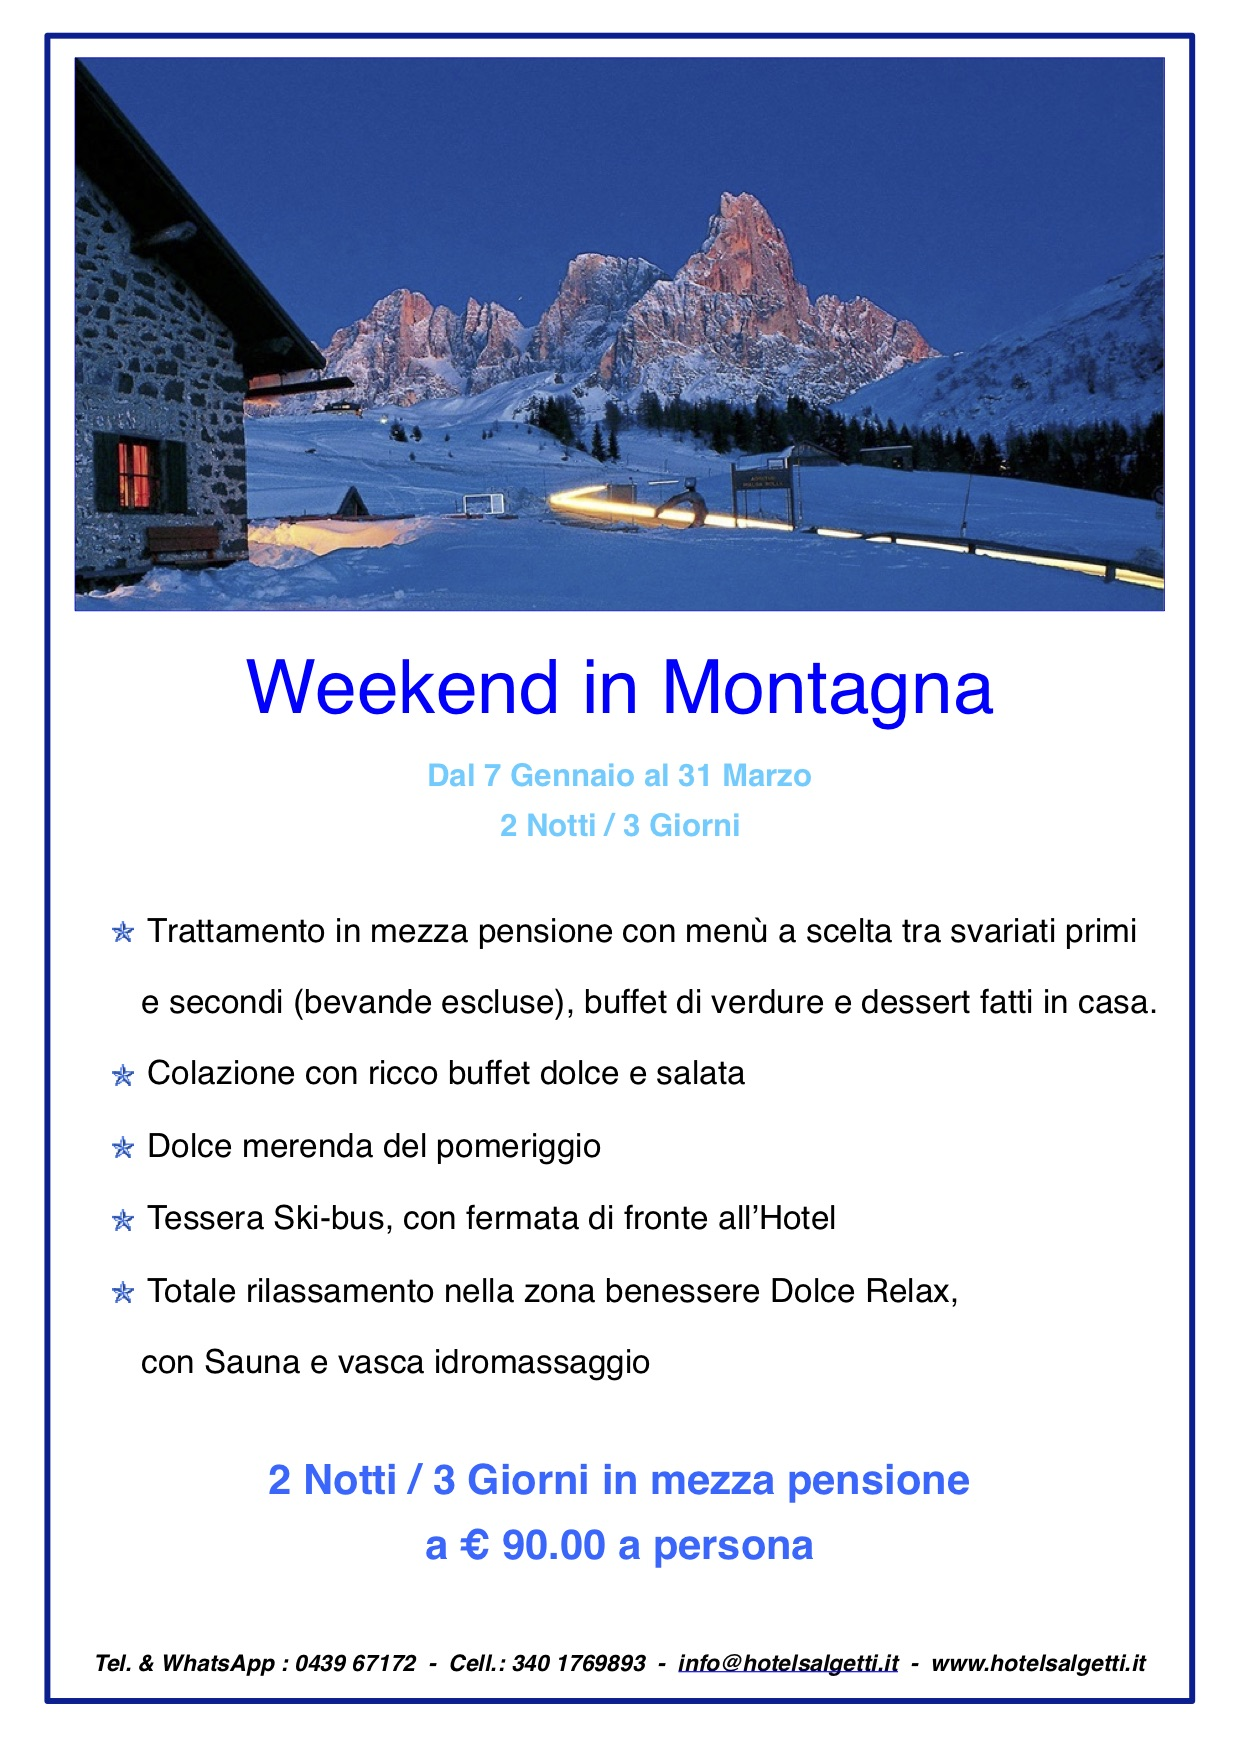 Weekend in Montagna 2019.jpg